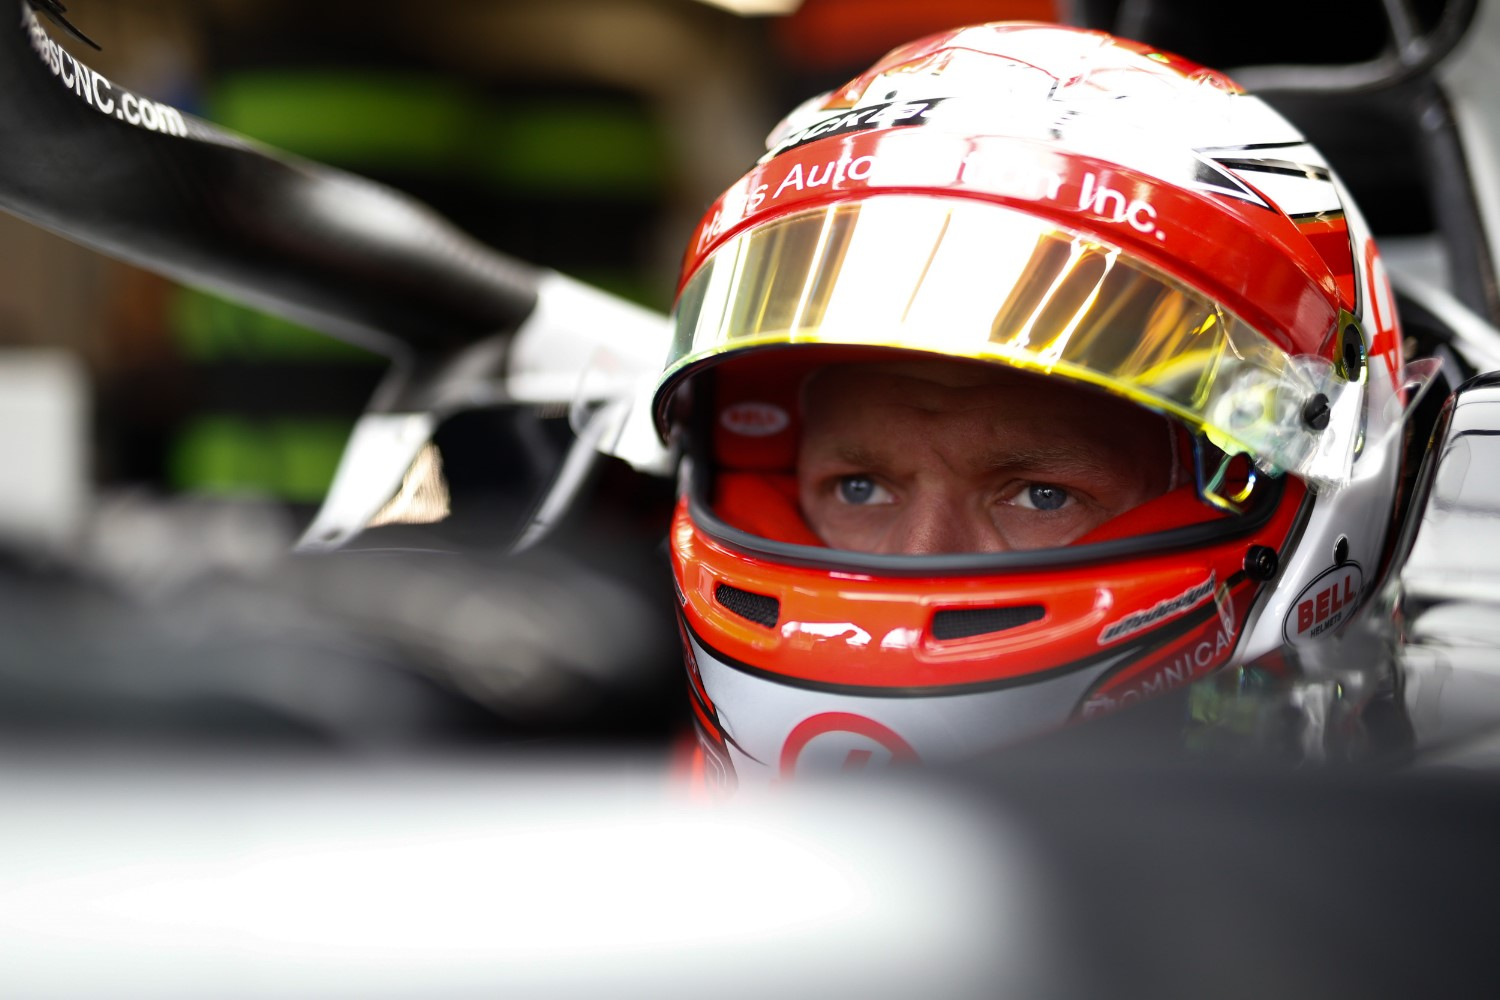 Kevin Magnussen at Spa Friday